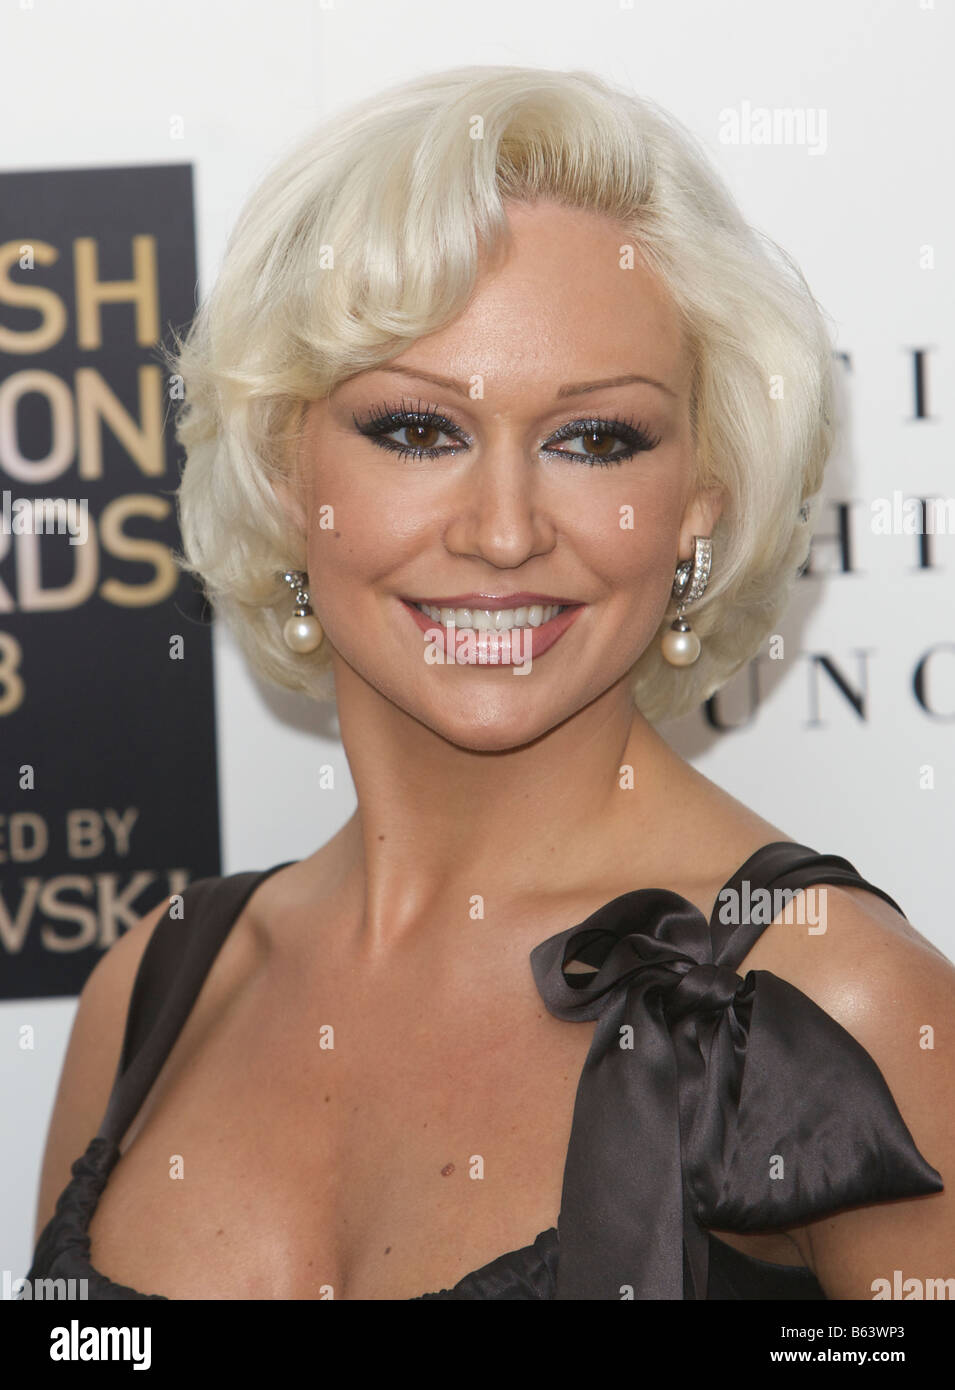 Kristina Rihanoff attending British fashion awards St Vincent square London 25th of November 2008 - Stock Image